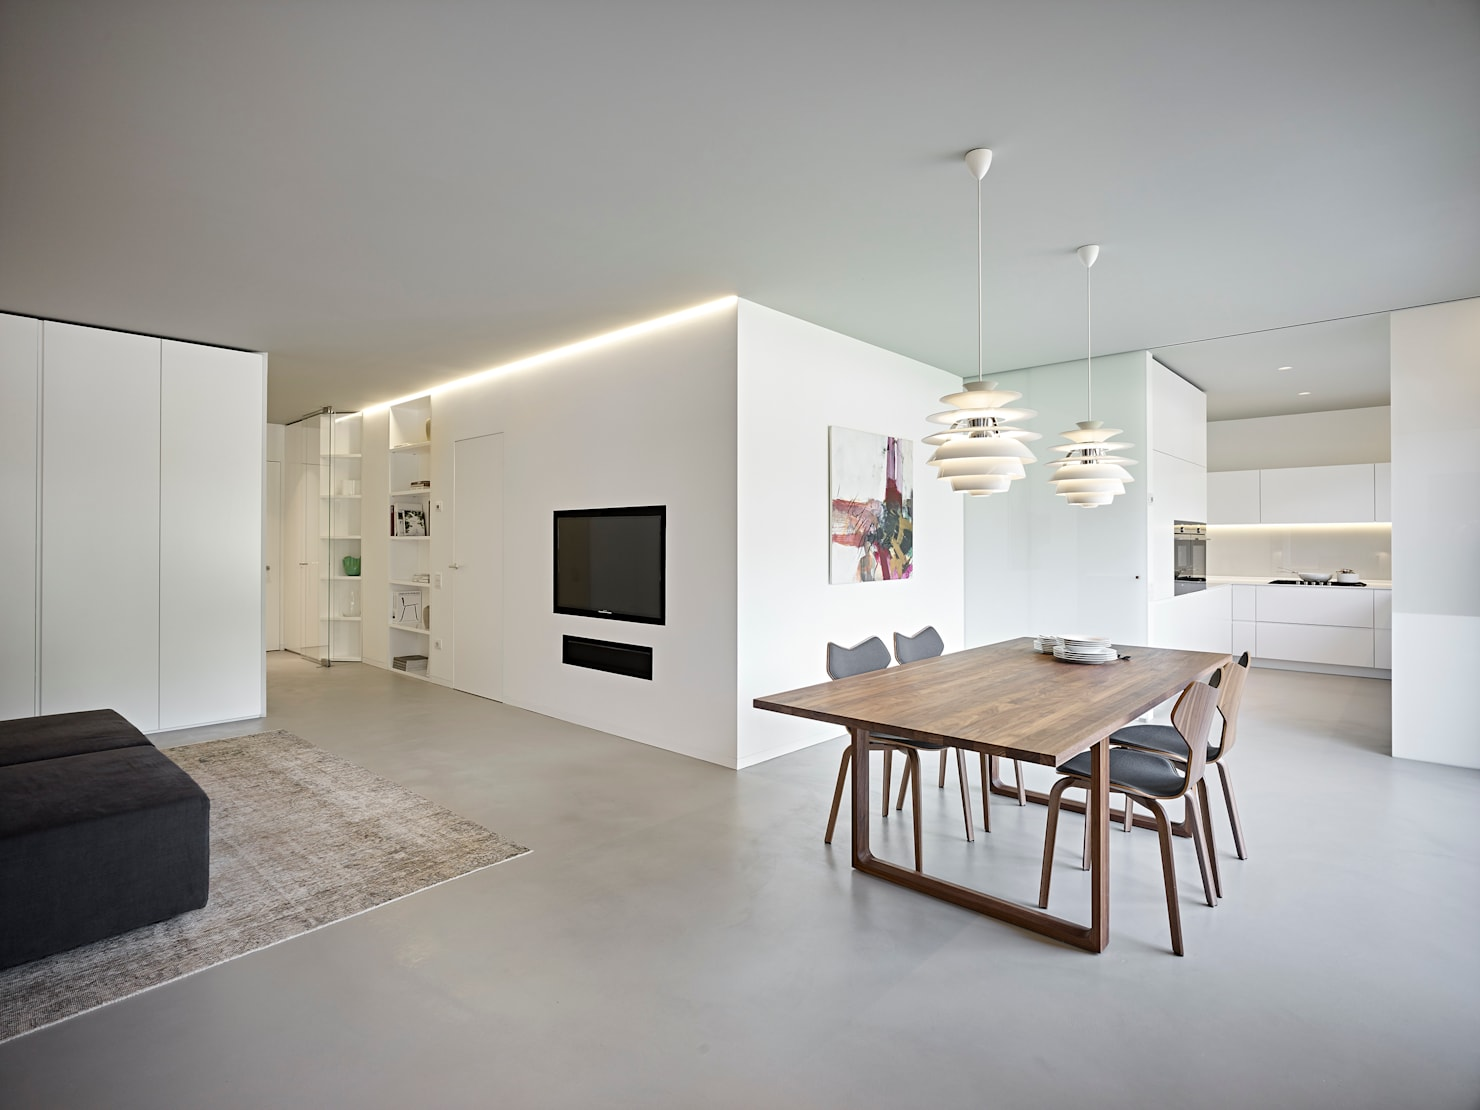 A minimal home with maximum style